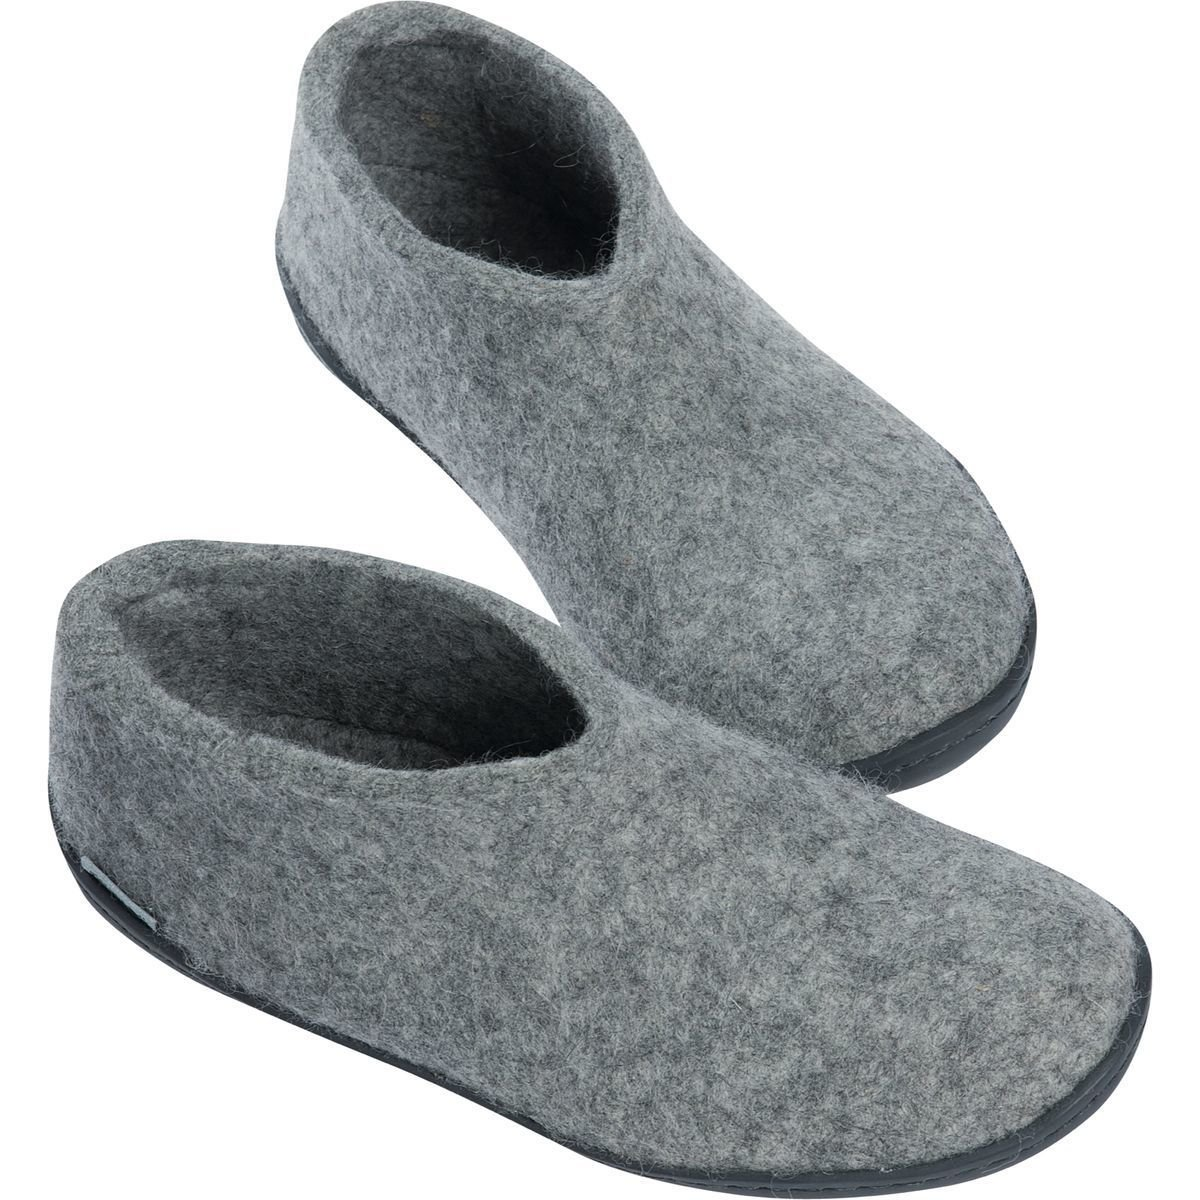 db7a3d301787 Model Glerups Filzschuh Grey with A rubber sole Gray Size  11   Amazon.co.uk  Shoes   Bags